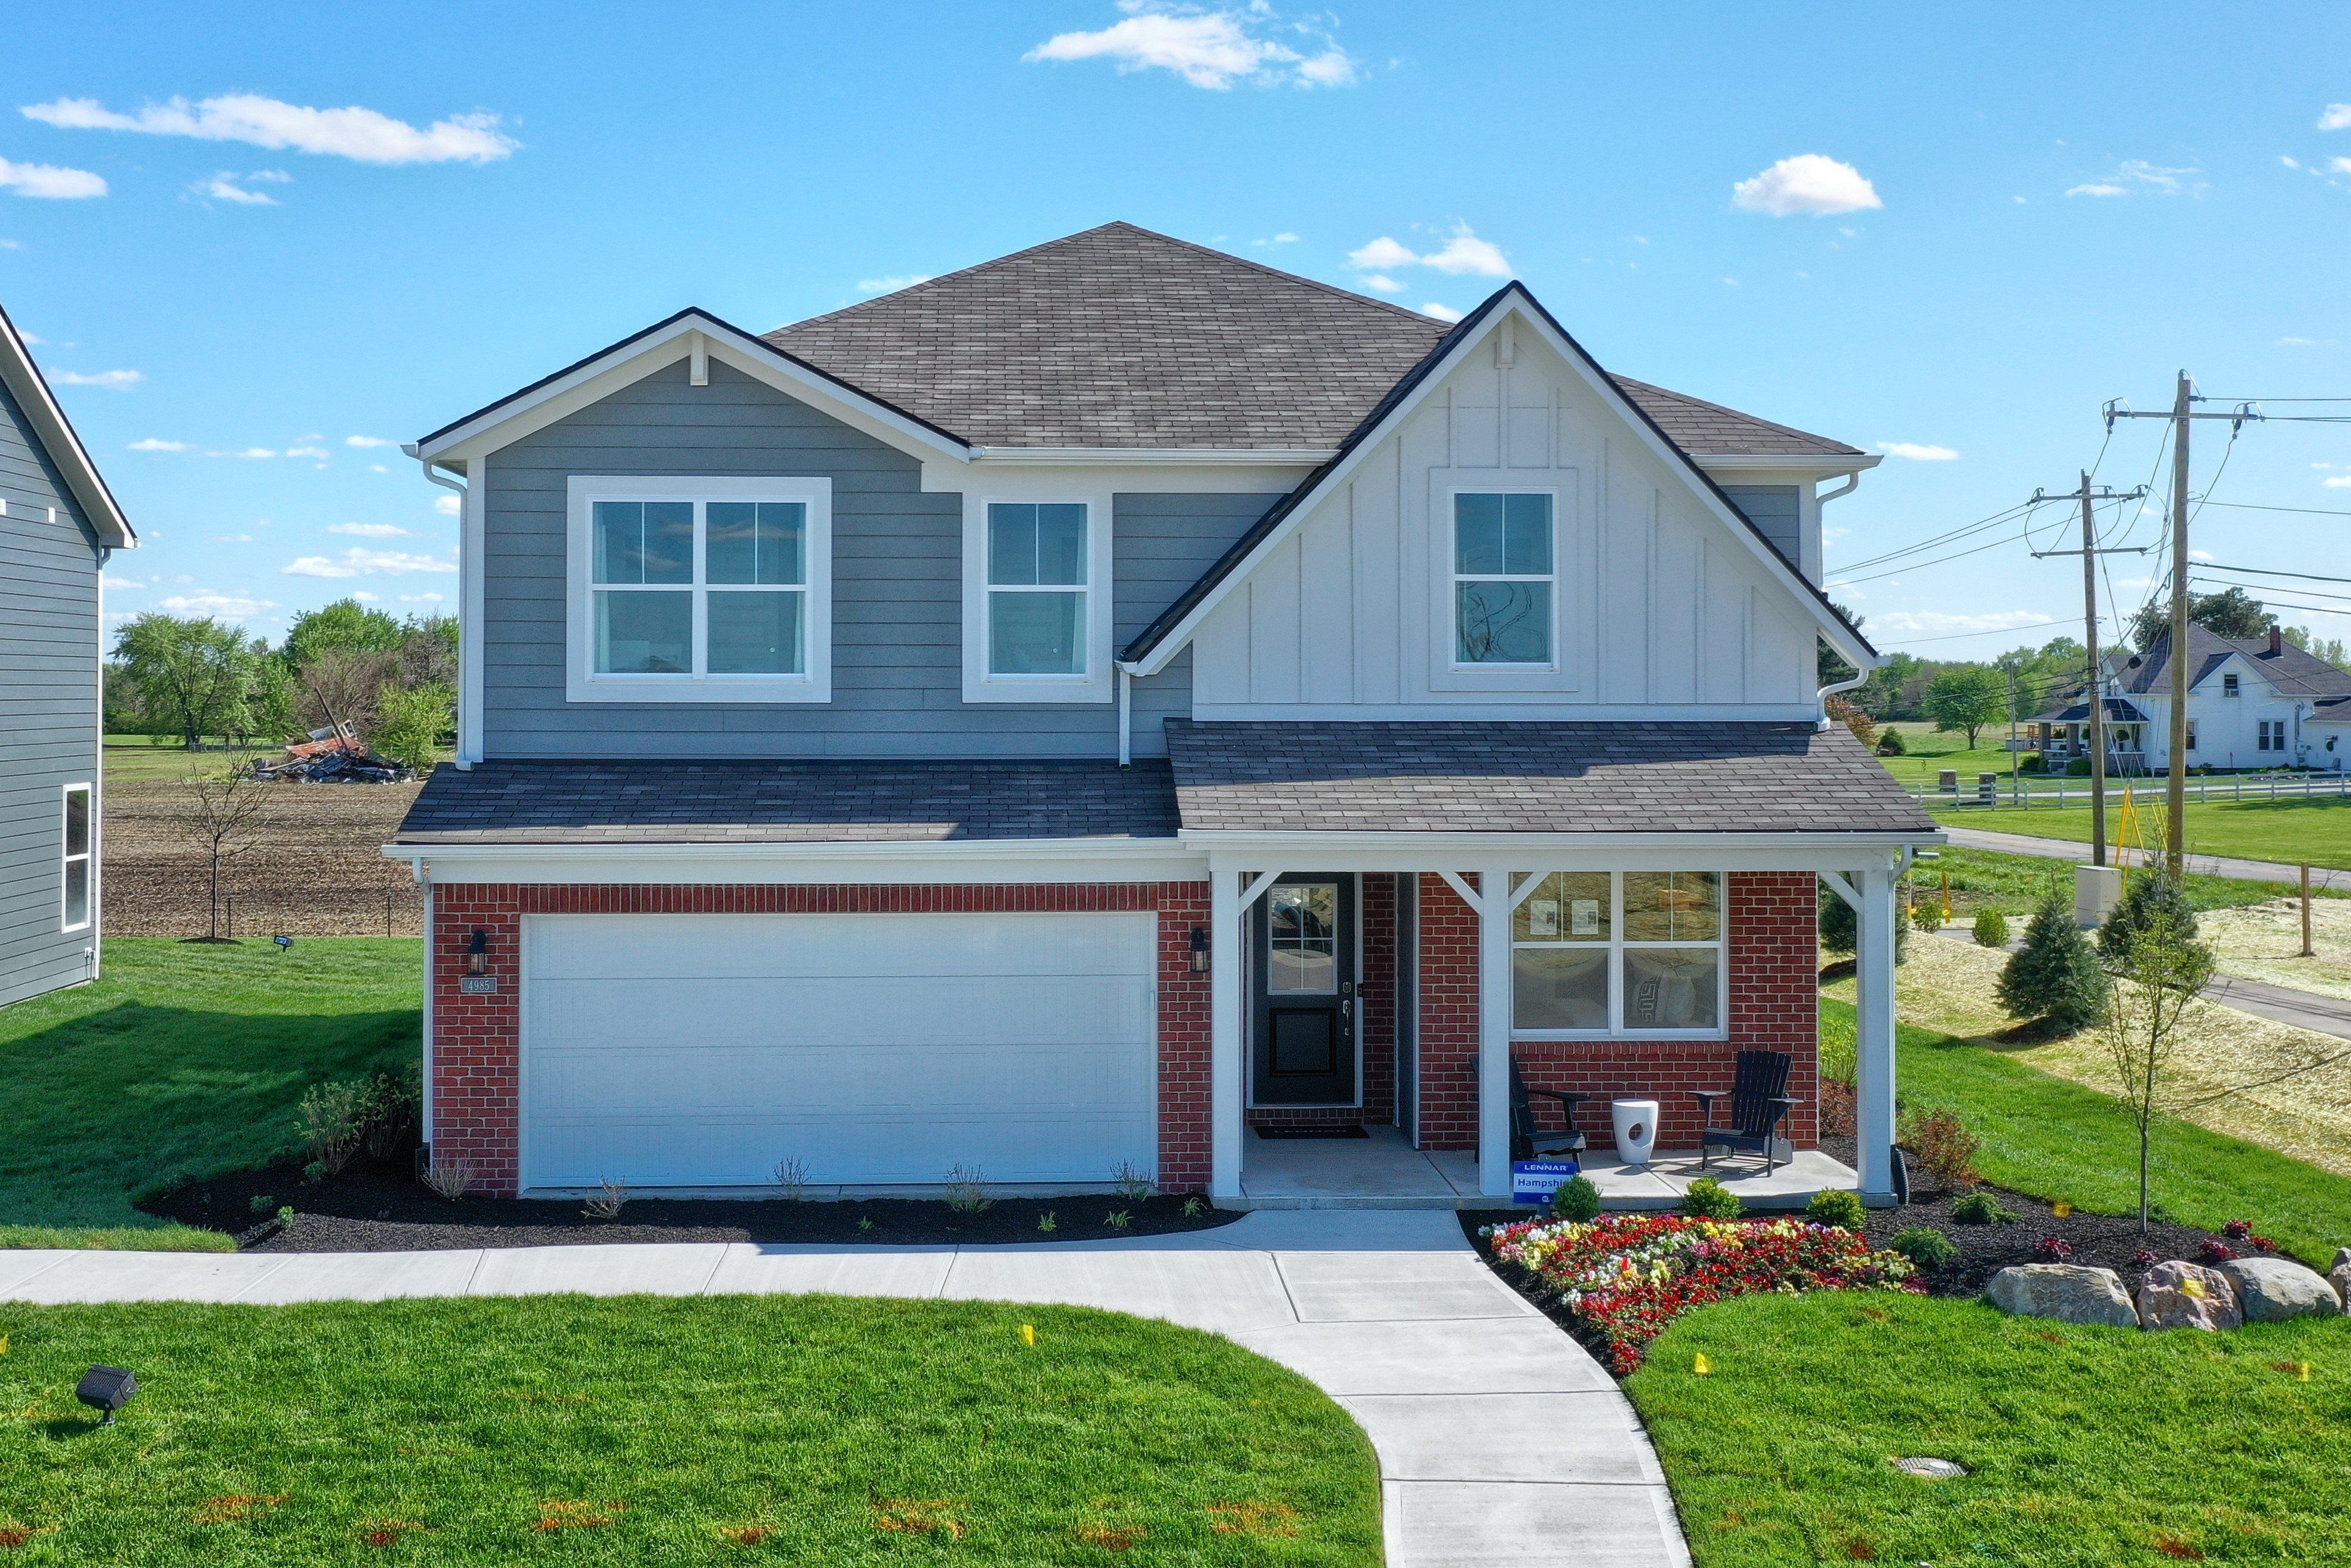 'Copperstone - Copperstone Venture' by Lennar - Indiana in Indianapolis